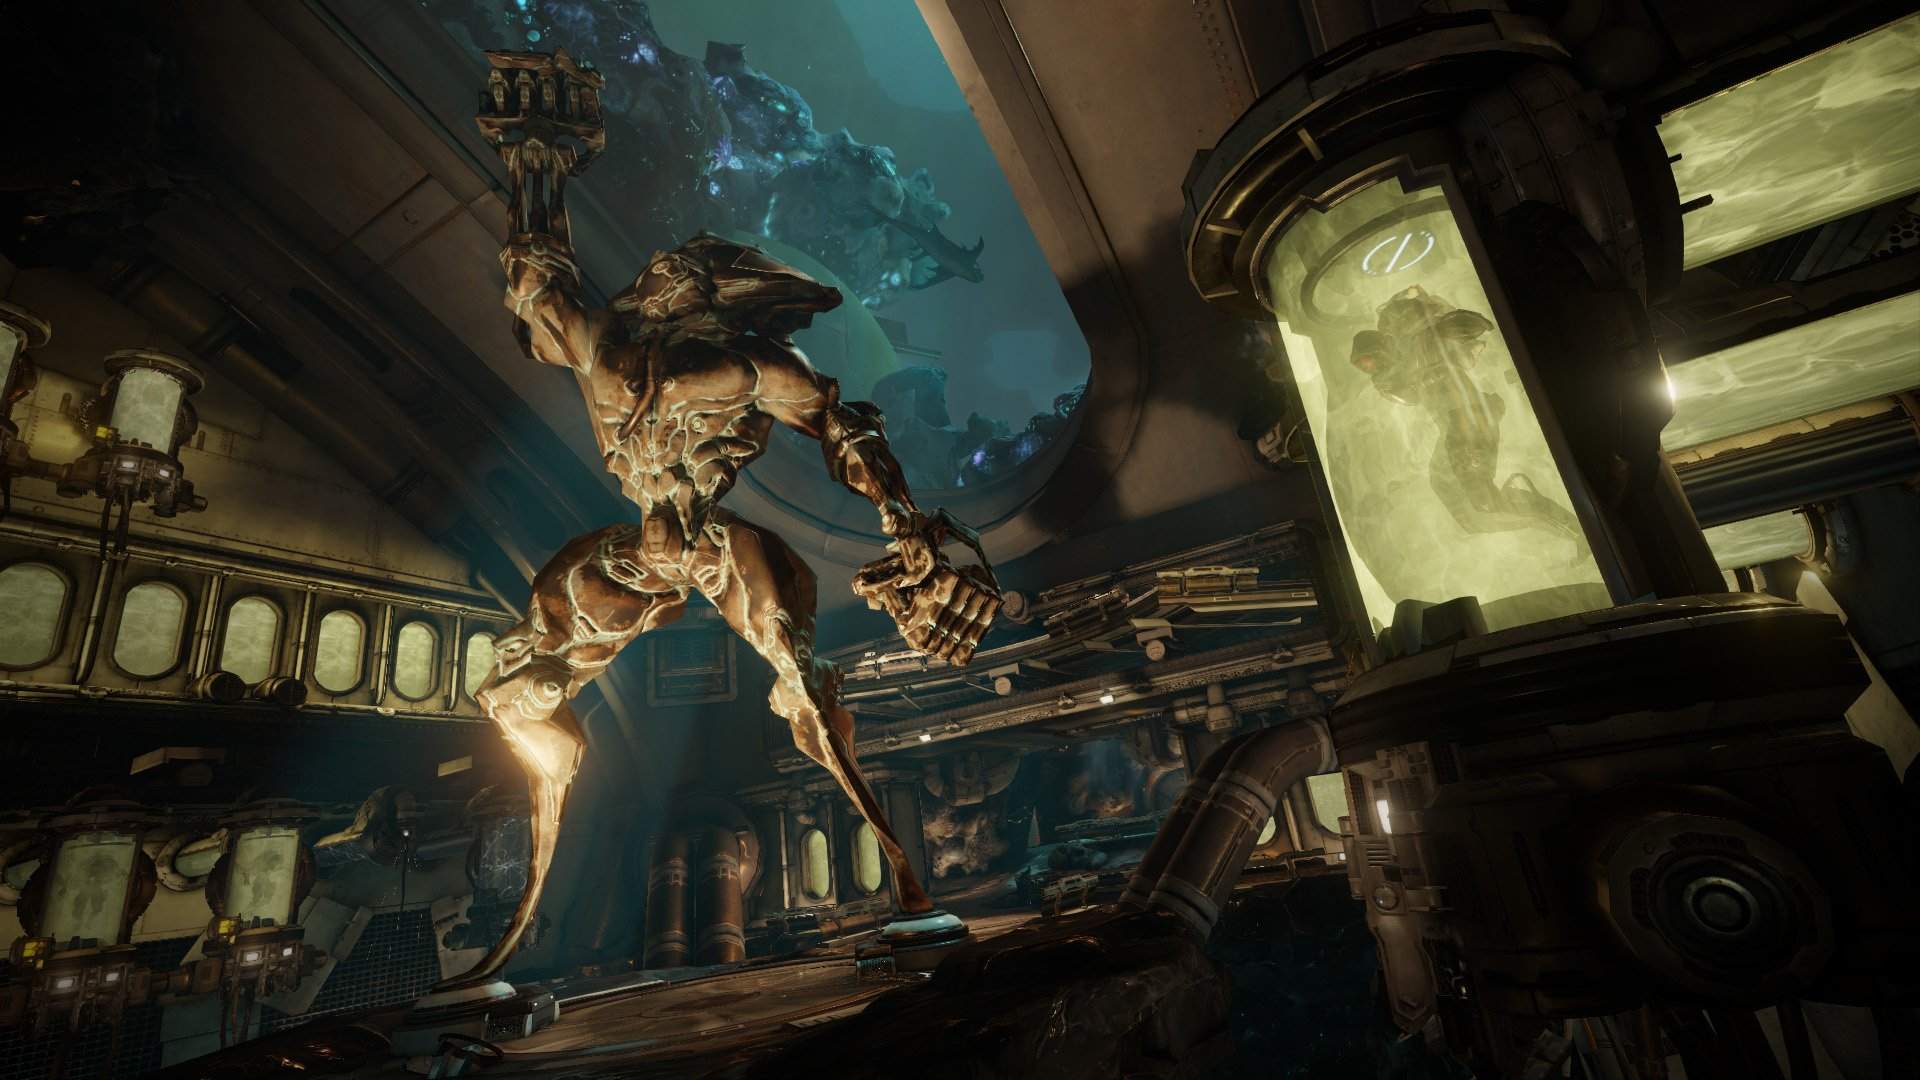 TennoCon 2019 kicks off on July 6 with all-day live streams